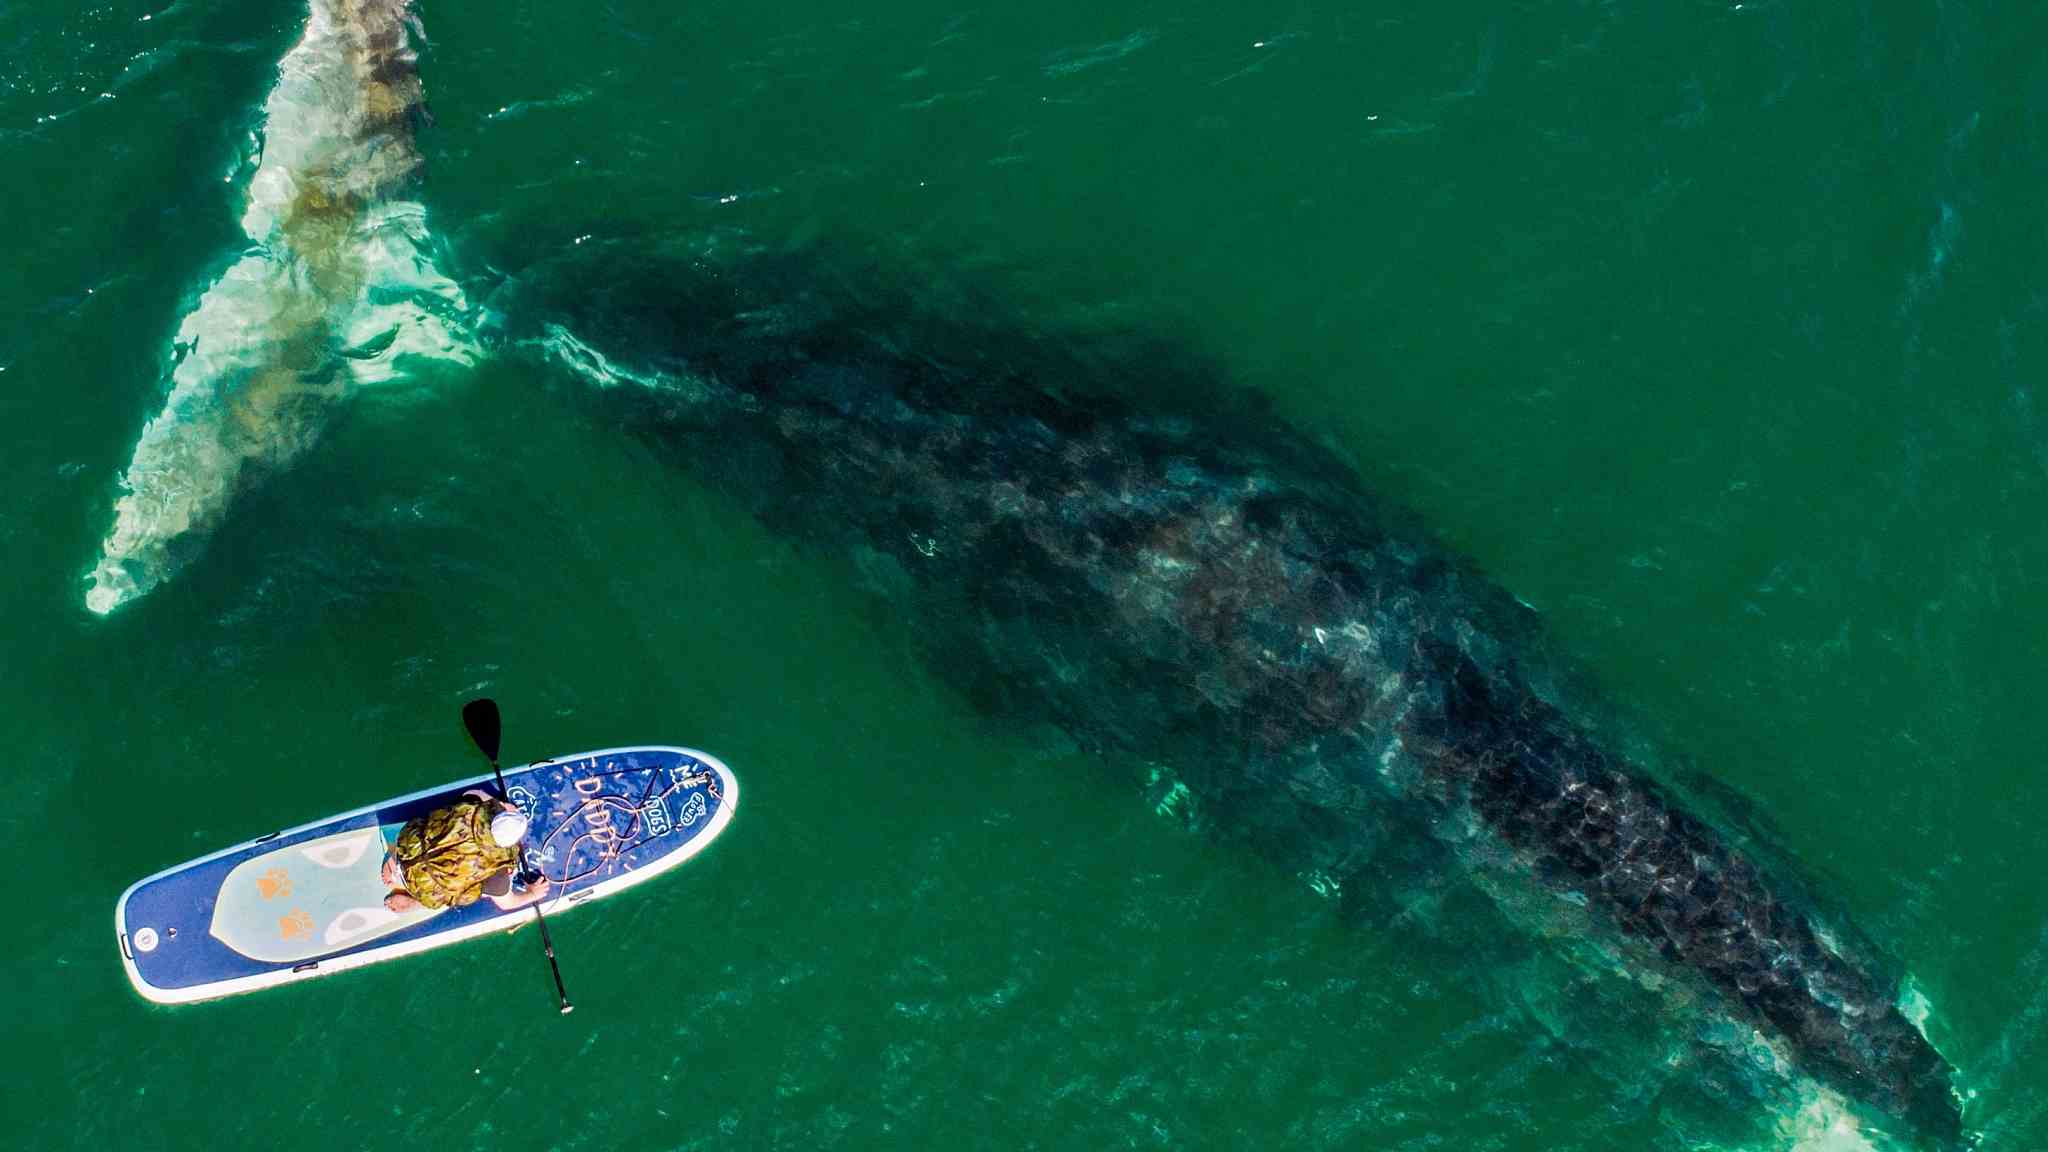 A surfer's close encounter with a bowhead whale